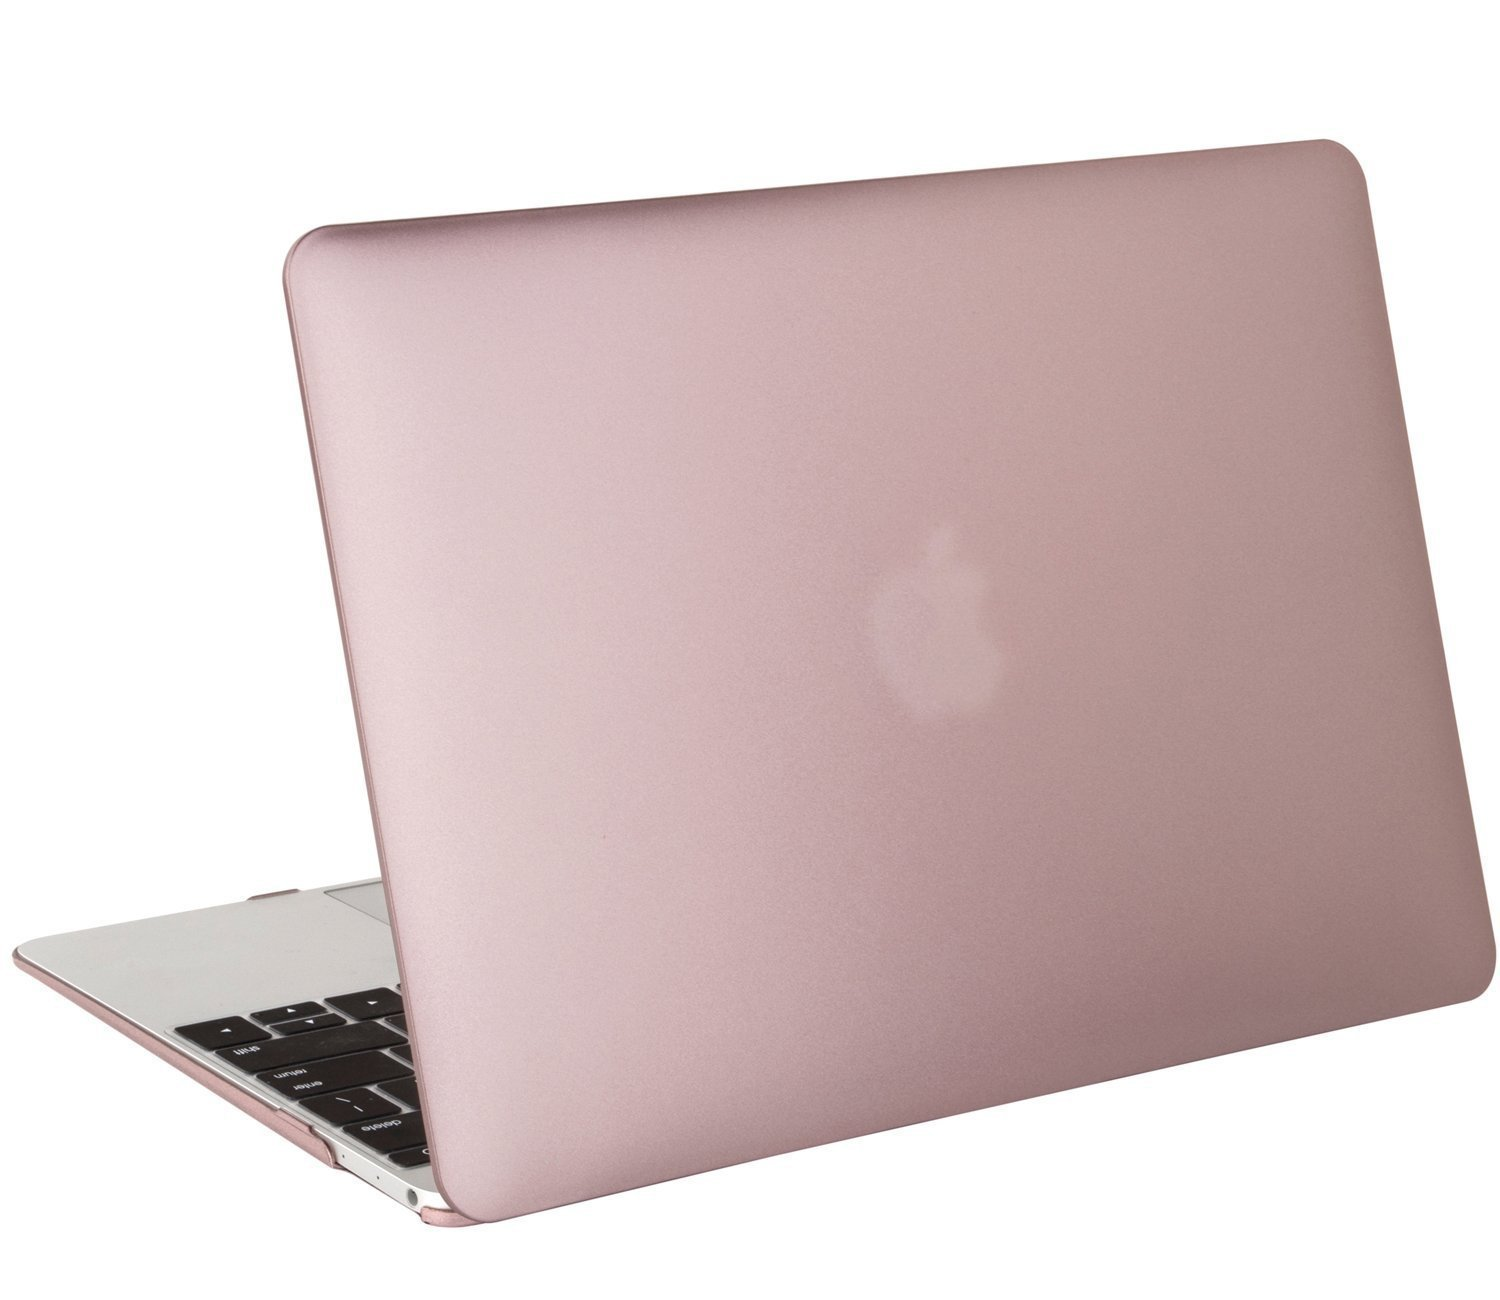 quality design 5cb22 79d5b MOSISO Plastic Hard Shell Case Cover Compatible MacBook 12 Inch Retina  Display Model A1534 (Version 2017/2016/2015), Rose Gold